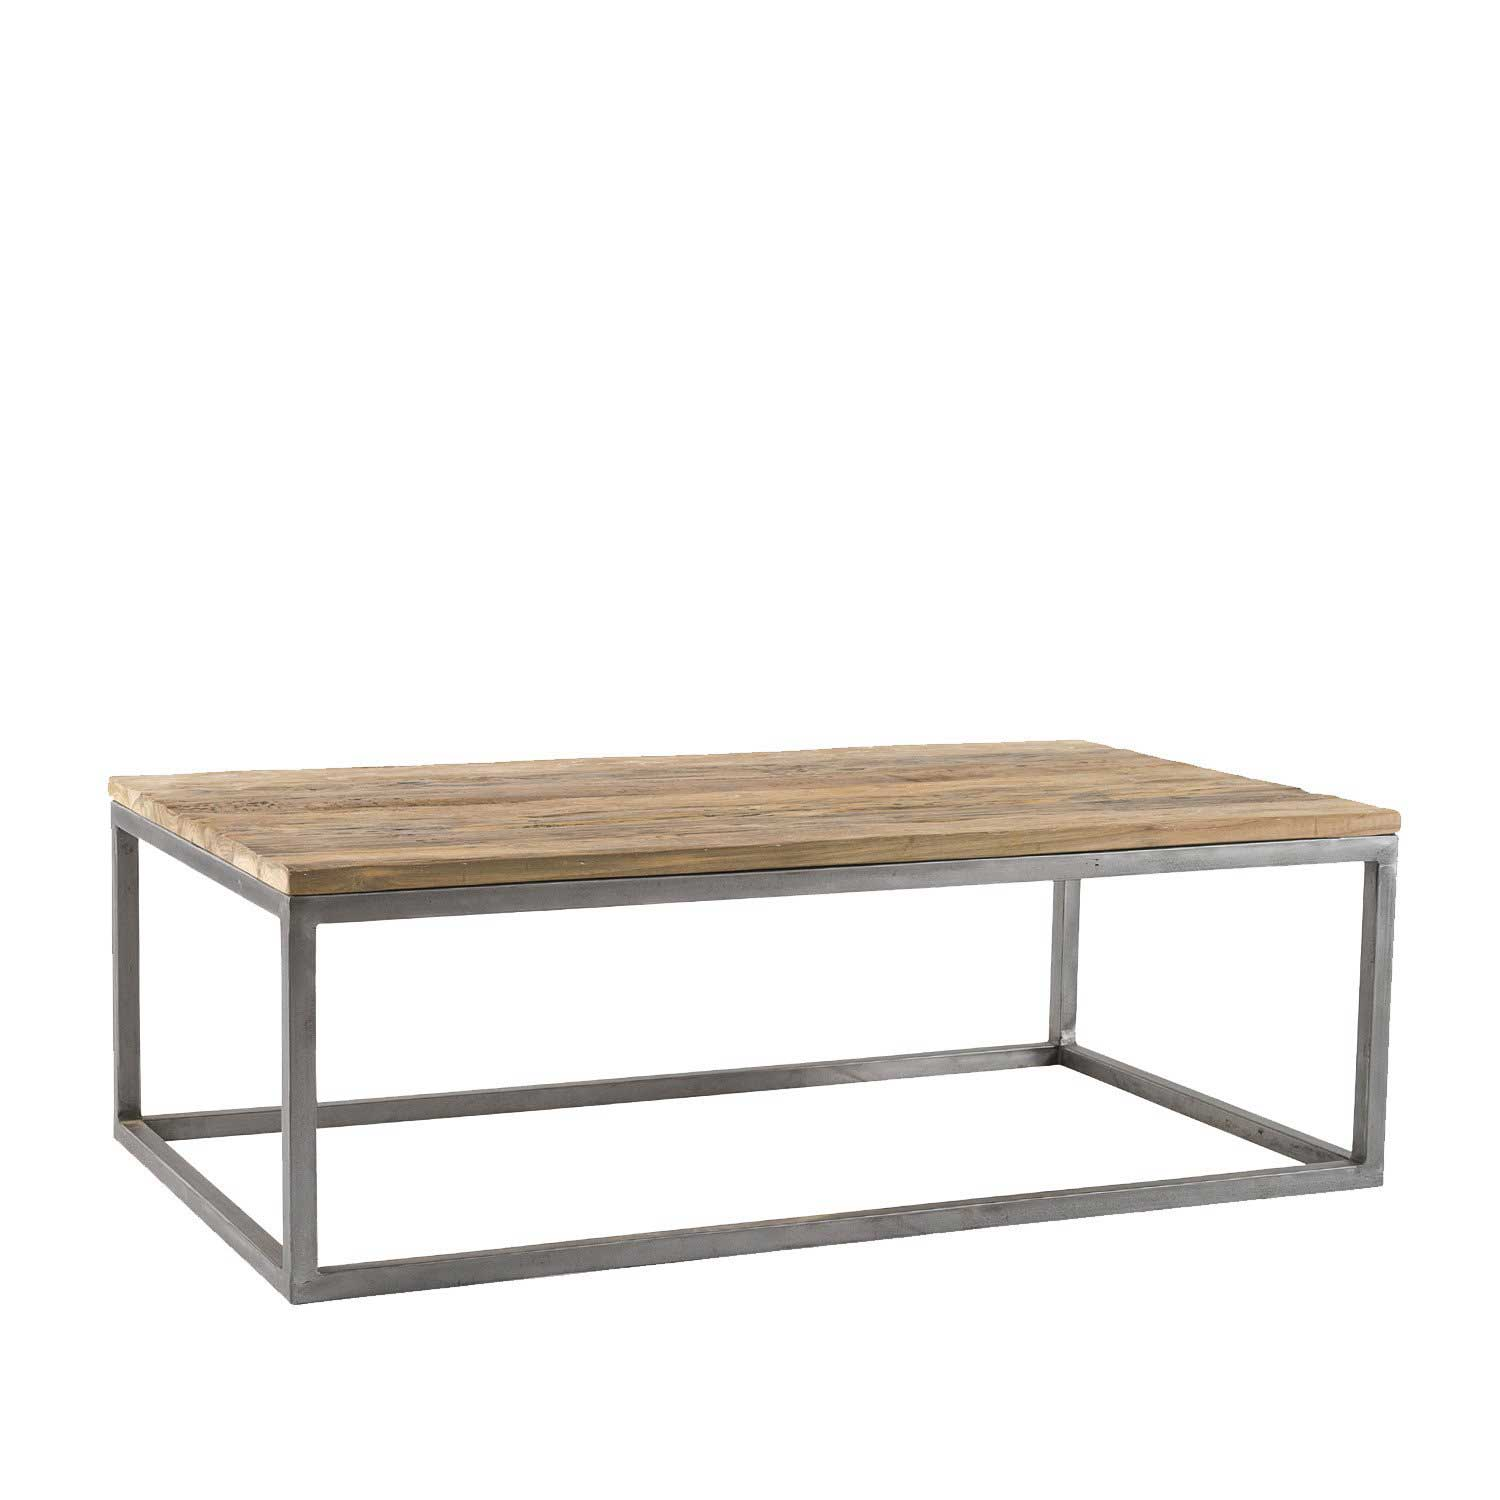 Salamanca Recycled Teak Coffee Table Padma's Plantation